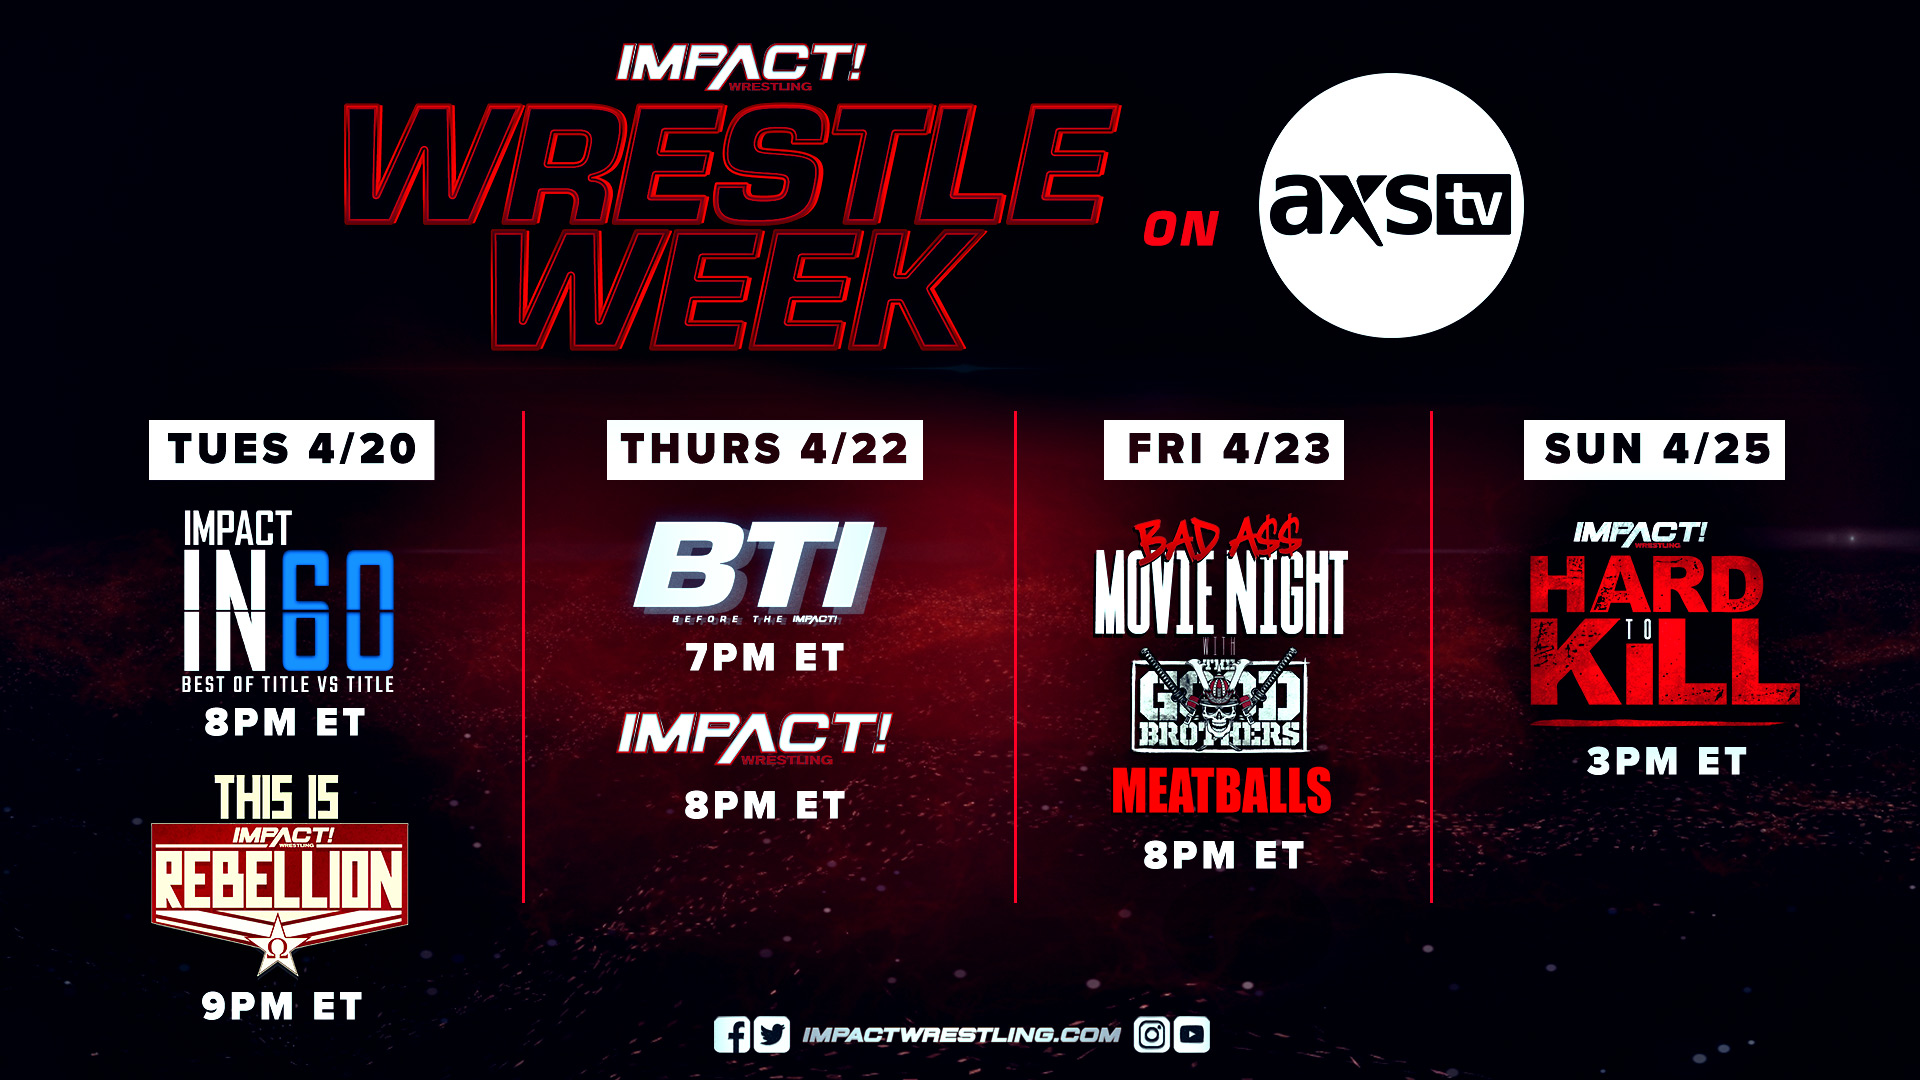 Wrestle Week Takes Over AXS TV Starting This Tuesday – IMPACT Wrestling